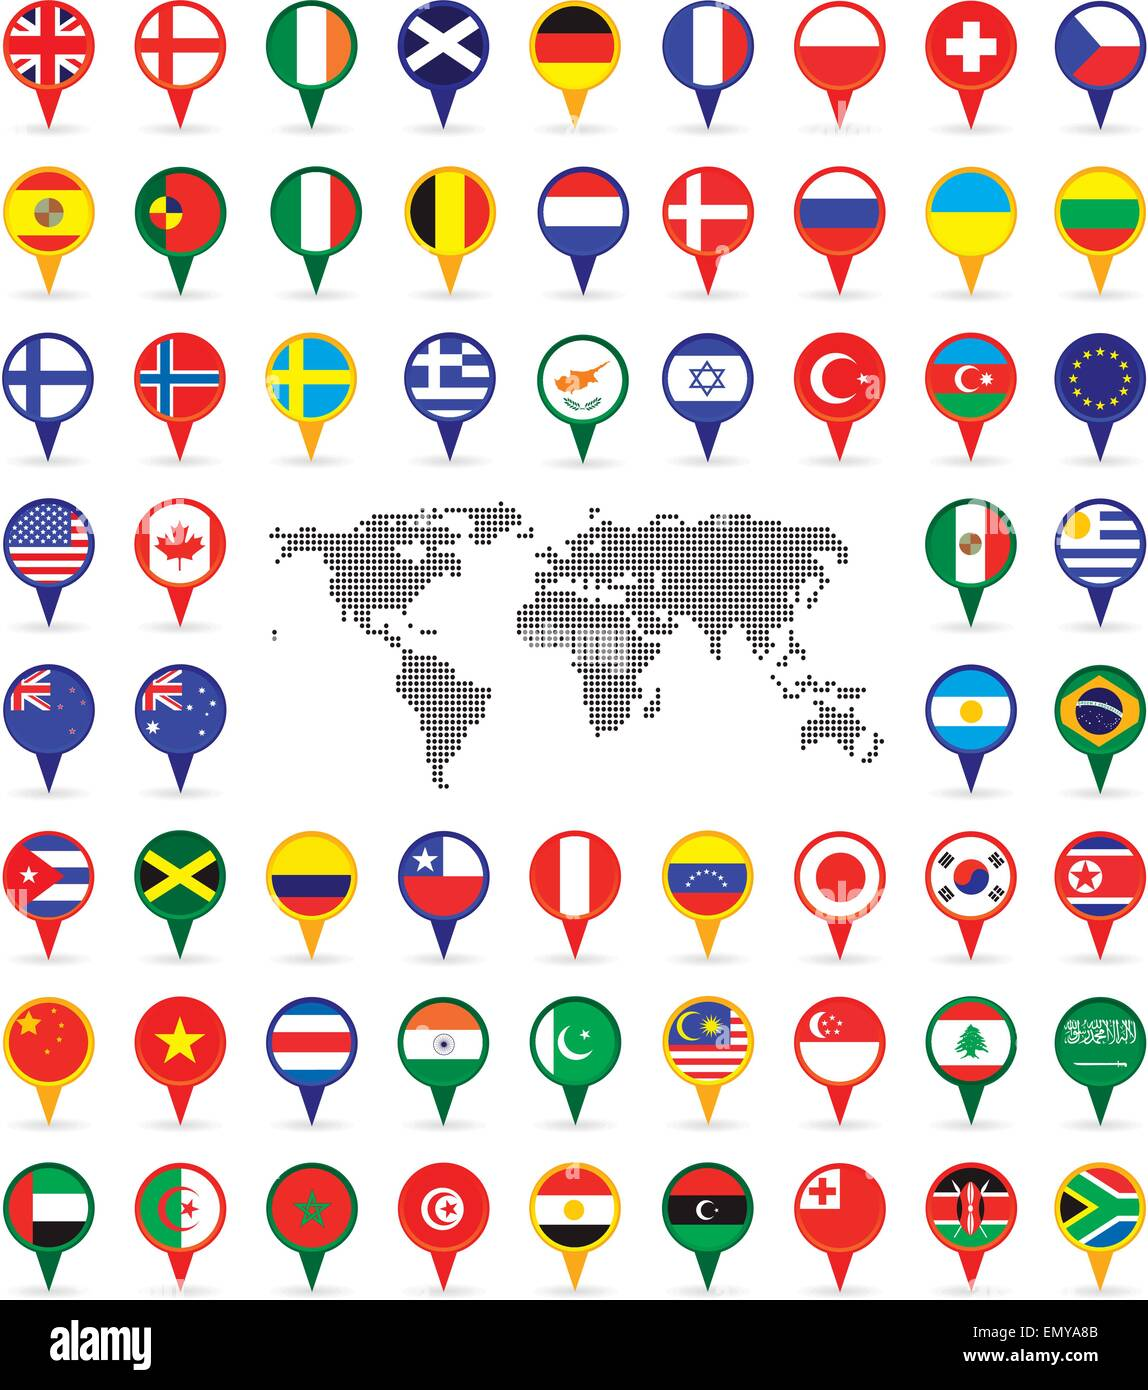 Map Of World Flags.World Flags On Map Pins Stock Vector Art Illustration Vector